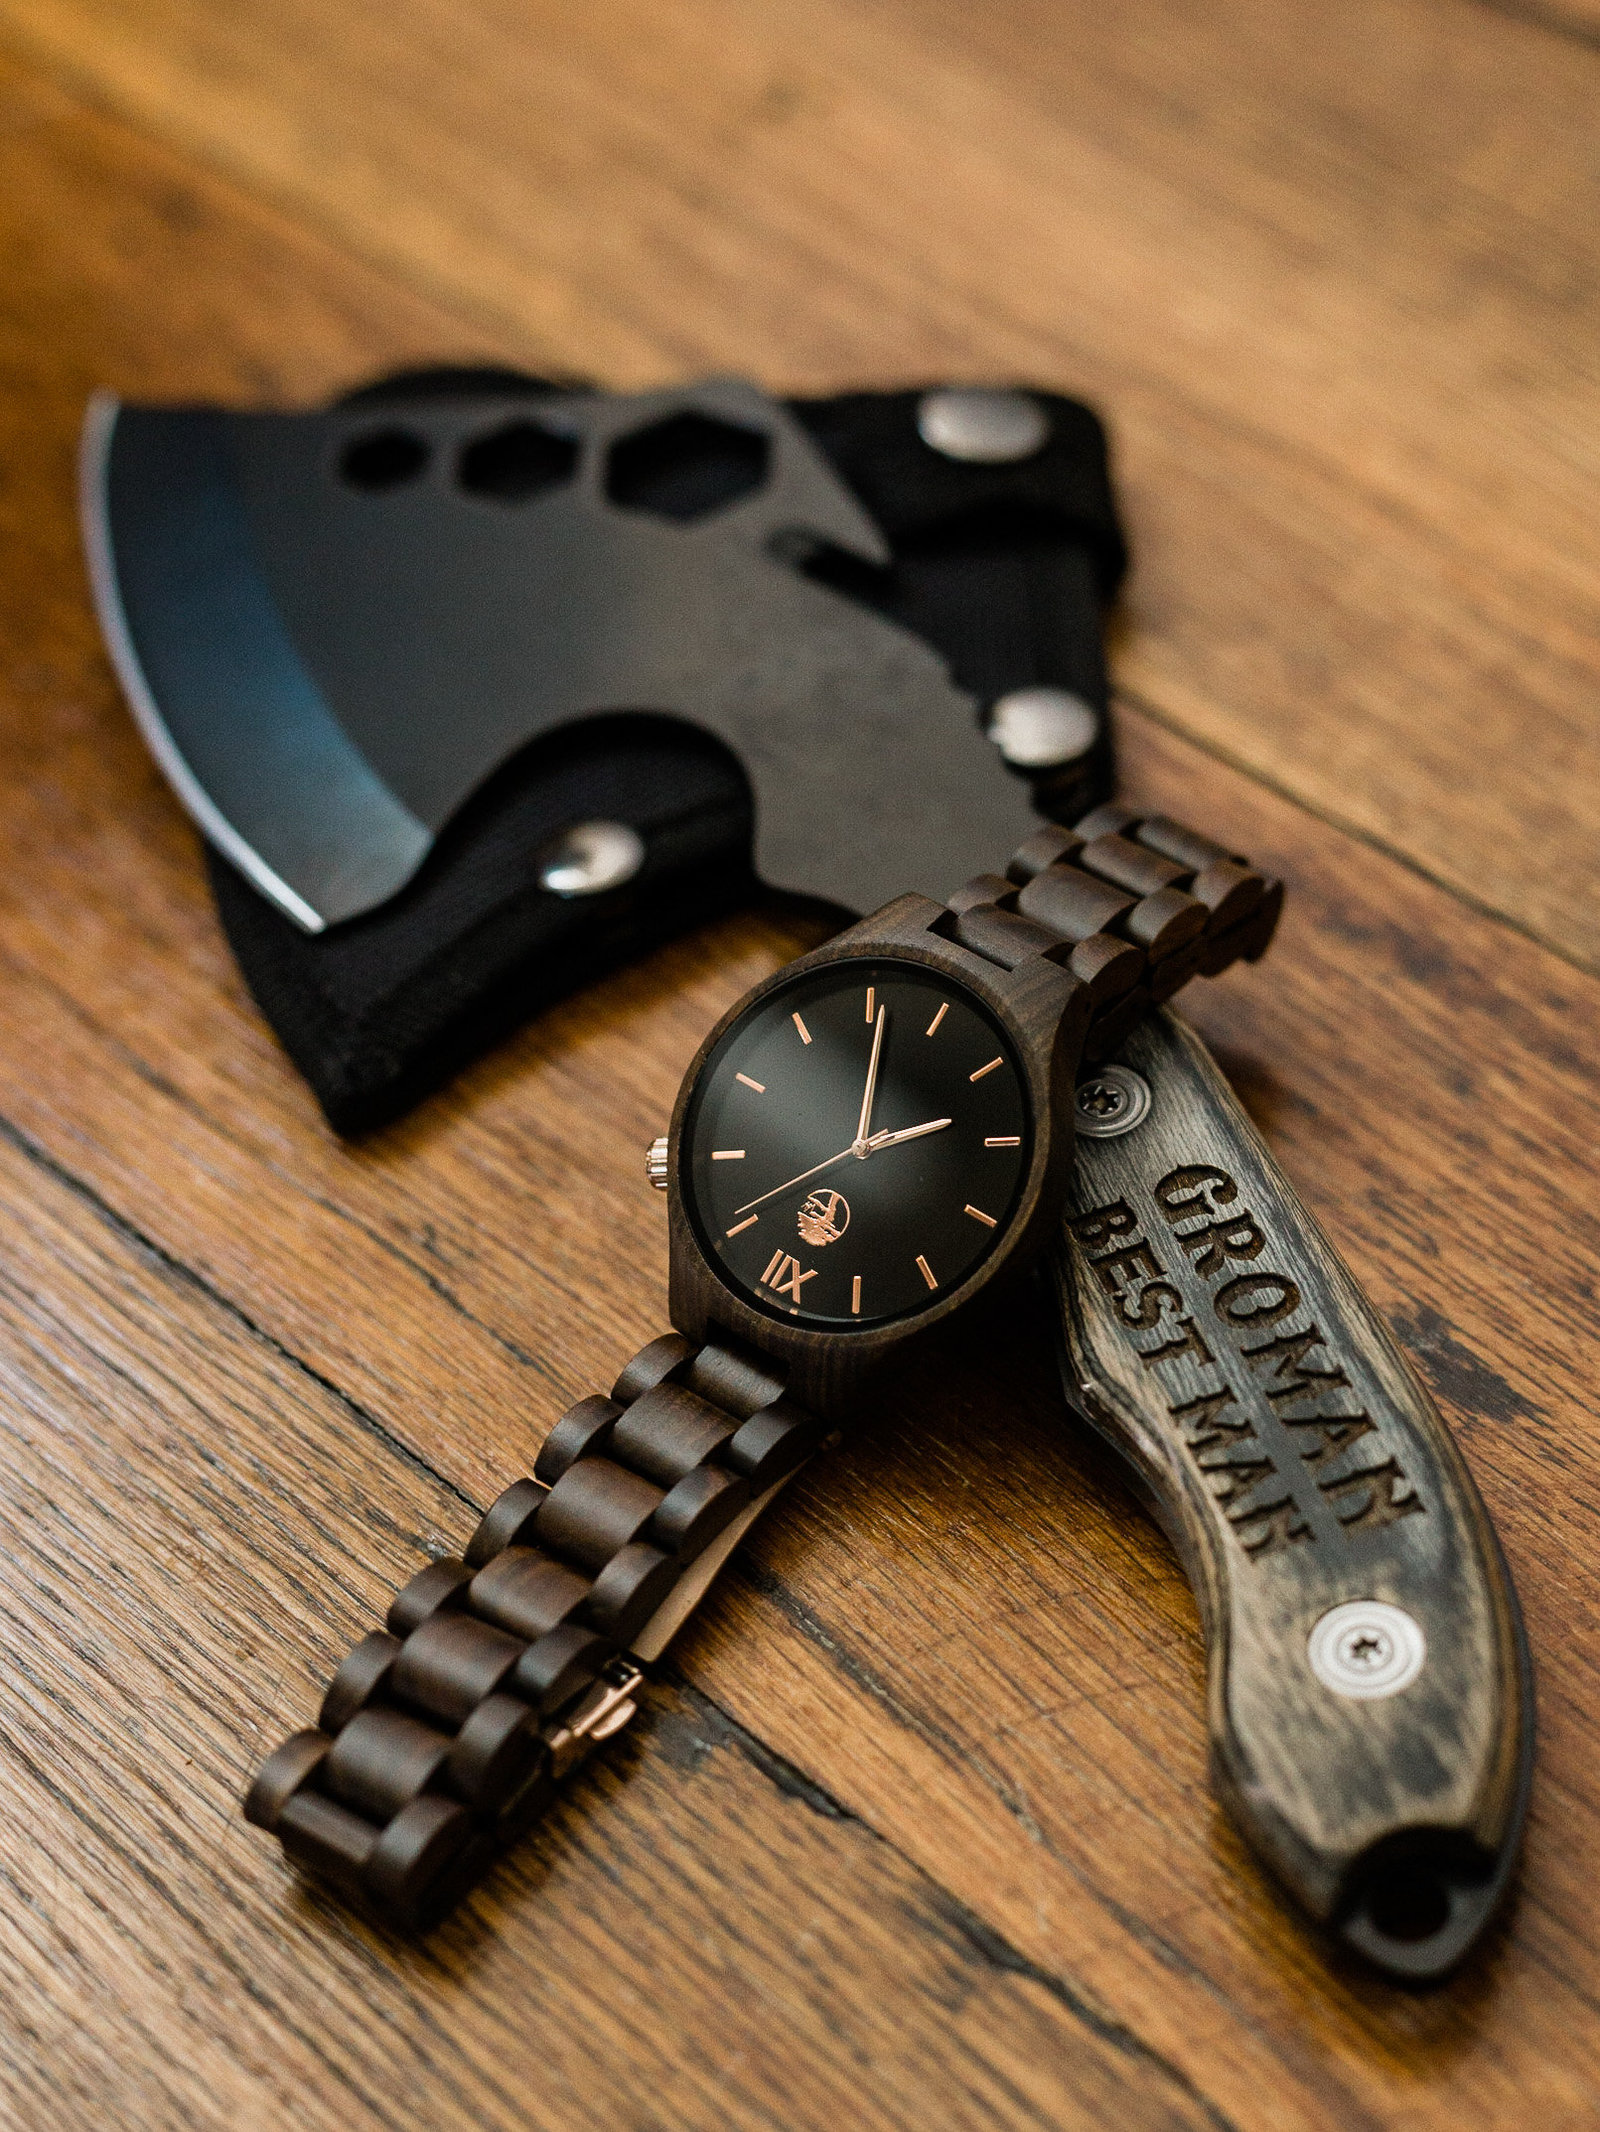 Groomsmen gifts, watch and customized ax